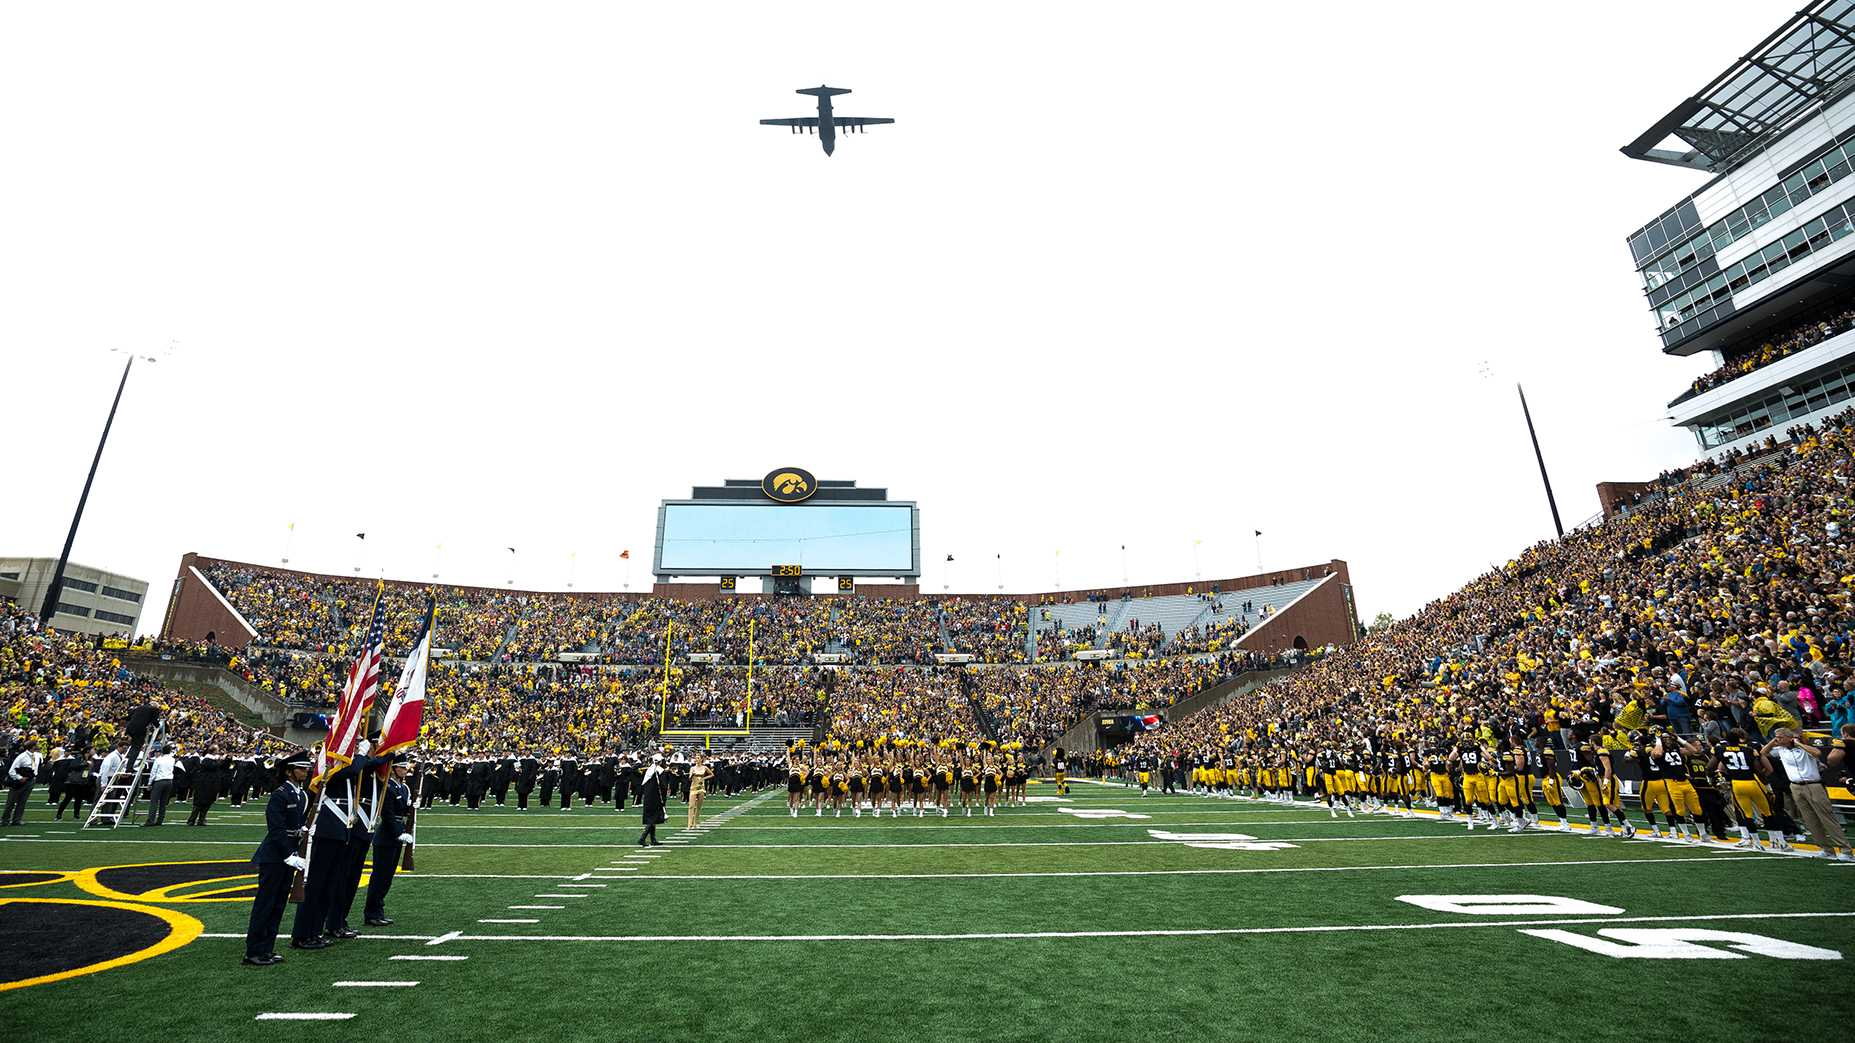 A C-130 flies over Kinnick Stadium before the start of the game between Iowa and Illinois on Saturday, Oct. 7, 2017. (Dave Harmantas/The Daily Iowan)